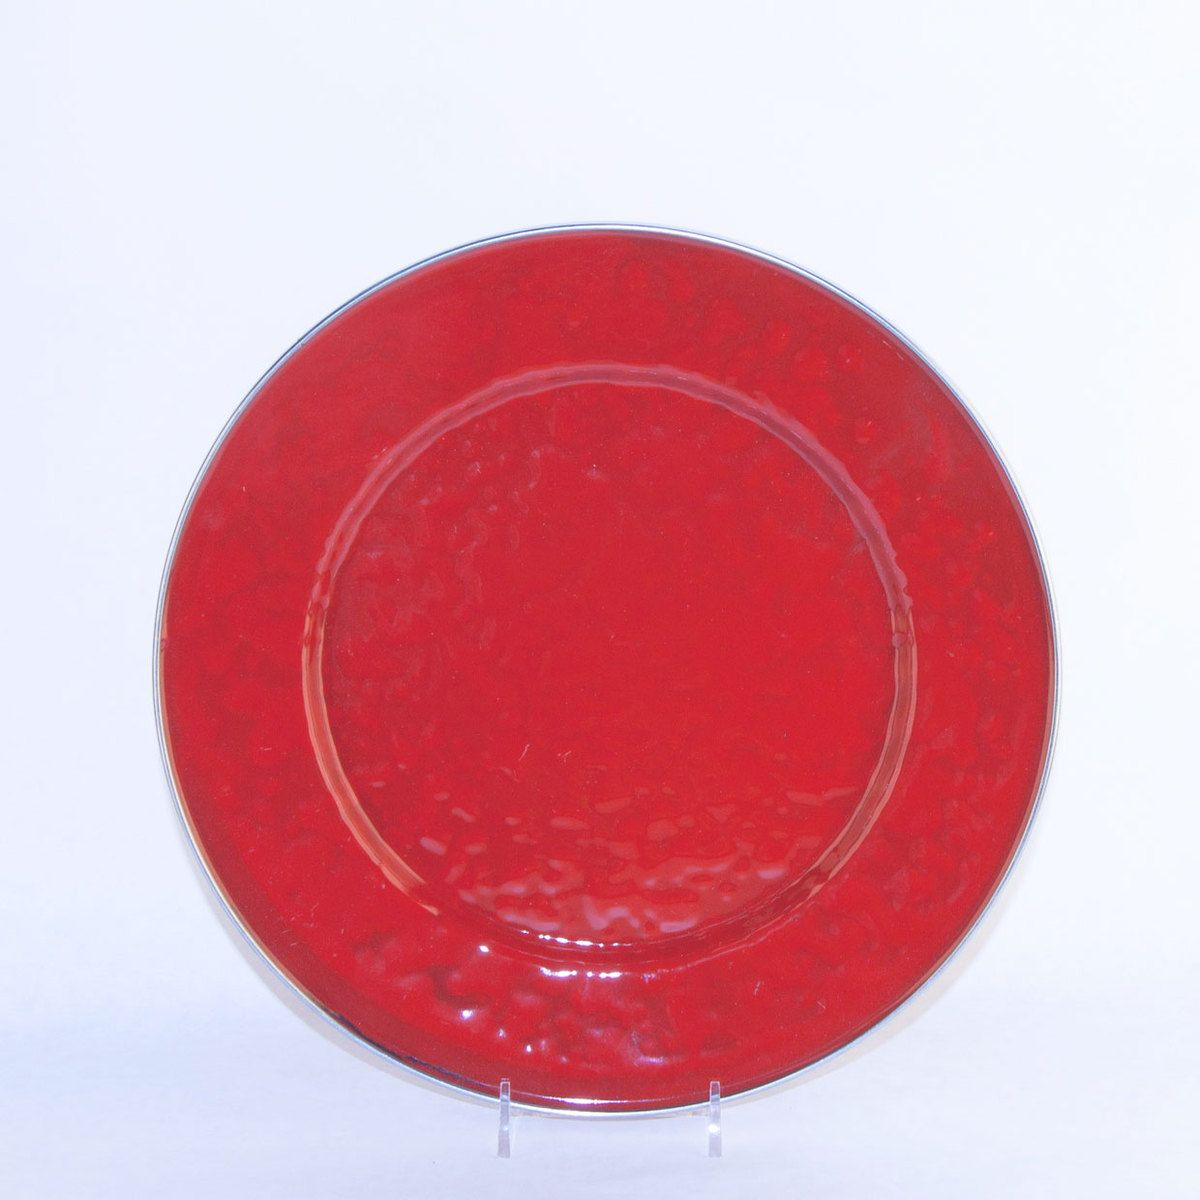 Dinner Plate Solid Red 4 Pack by Golden Rabbit & Dinner Plate Solid Red 4 Pack by Golden Rabbit | kitchen fun ...